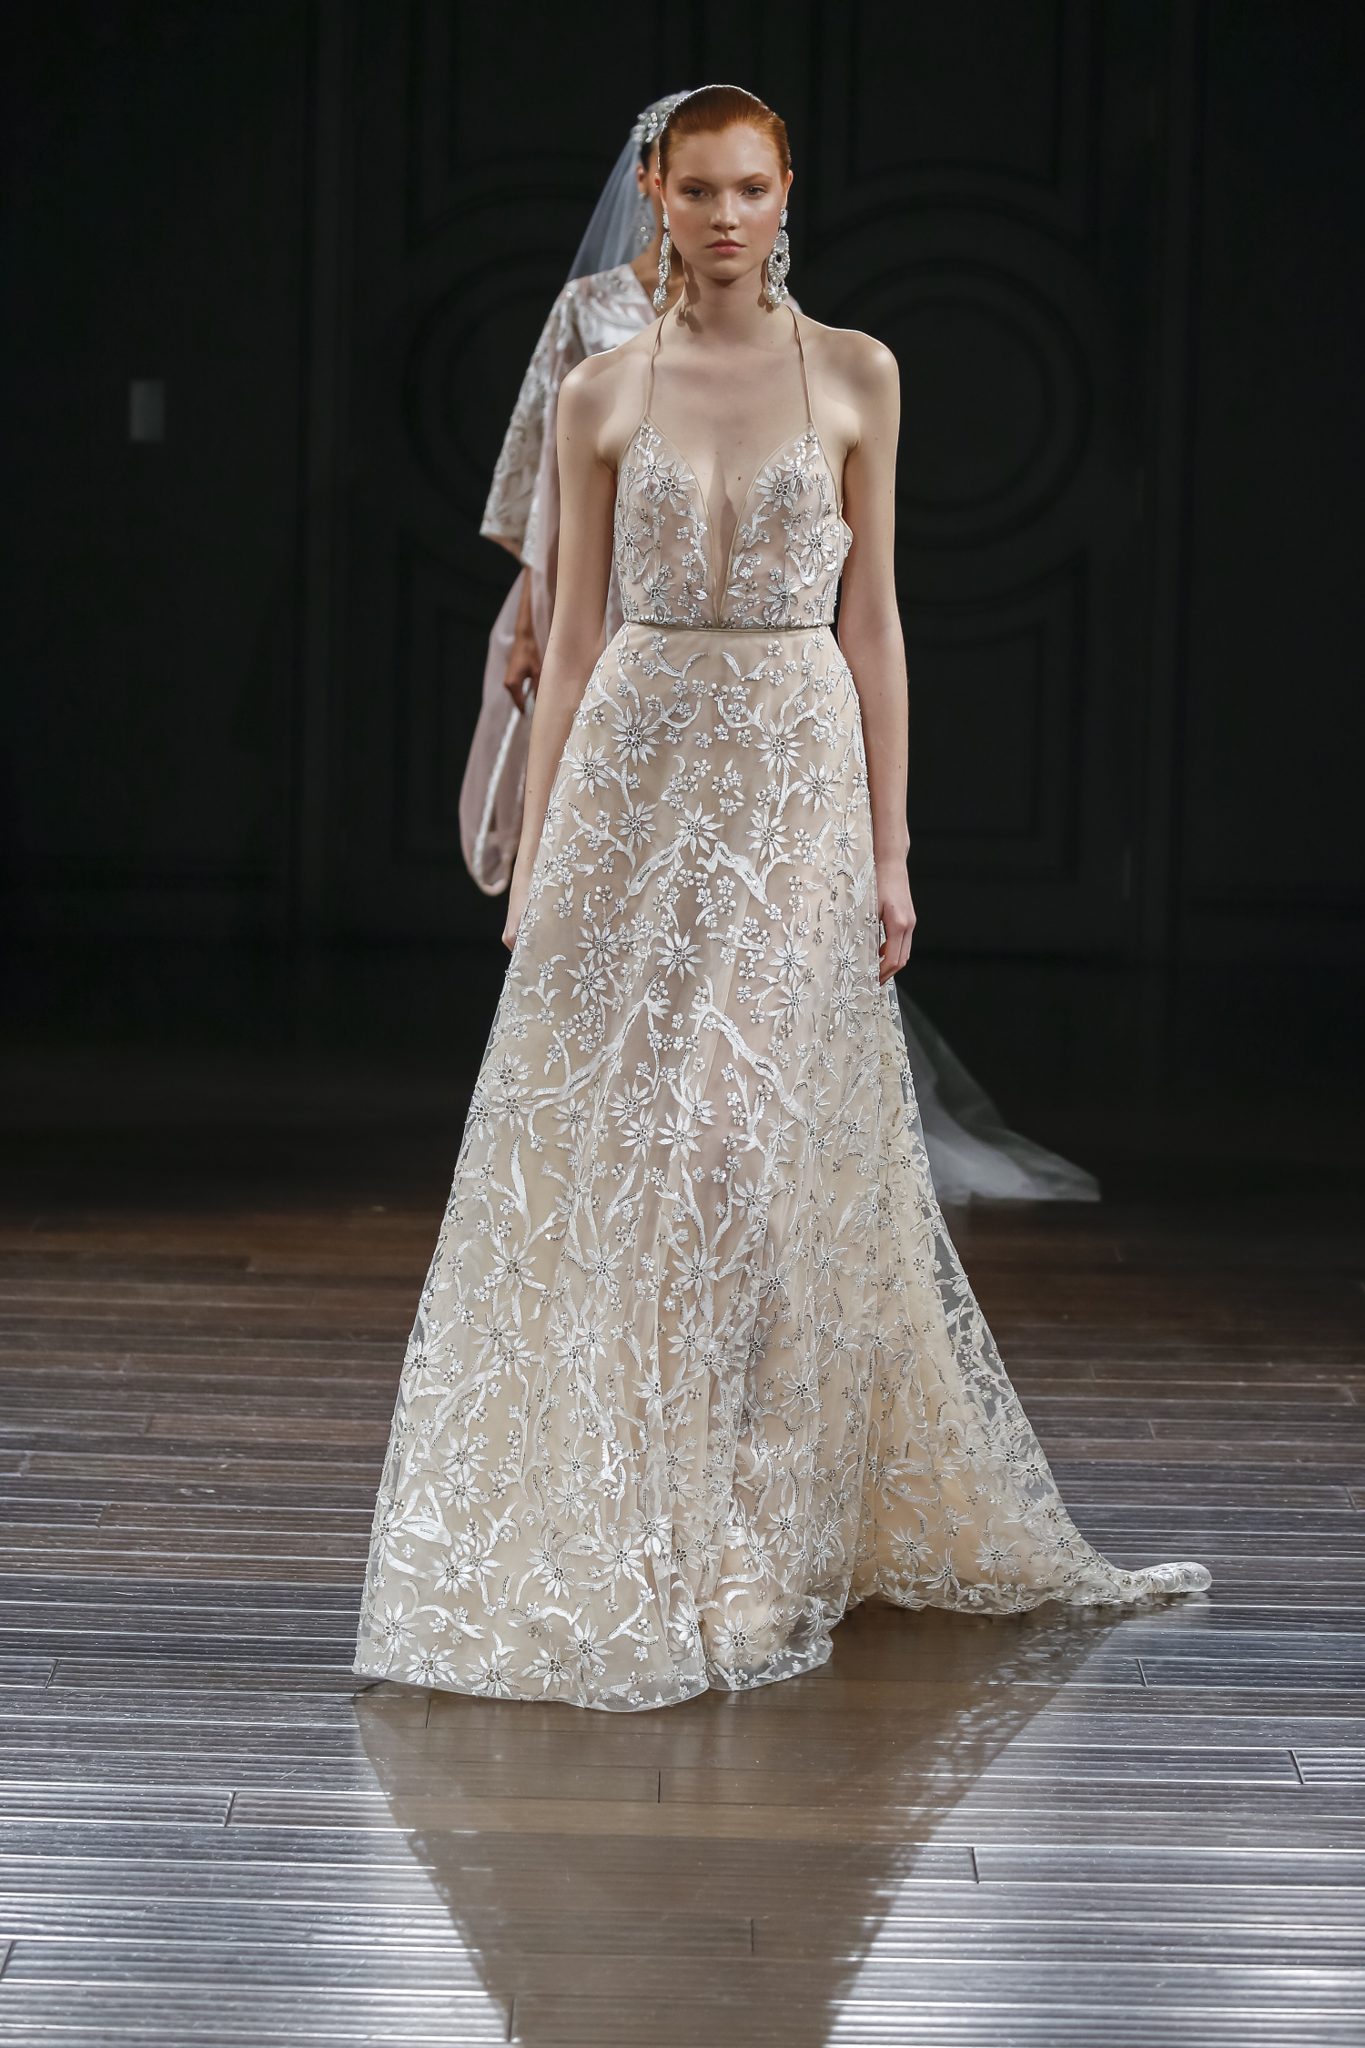 Naeem Khan Wedding Dresses Spring 2017 | Hand painted A-line gown with floral hand beadwork | itakeyou.co.uk #wedding #weddingdress #weddingdresses #weddinggown #bridalgown